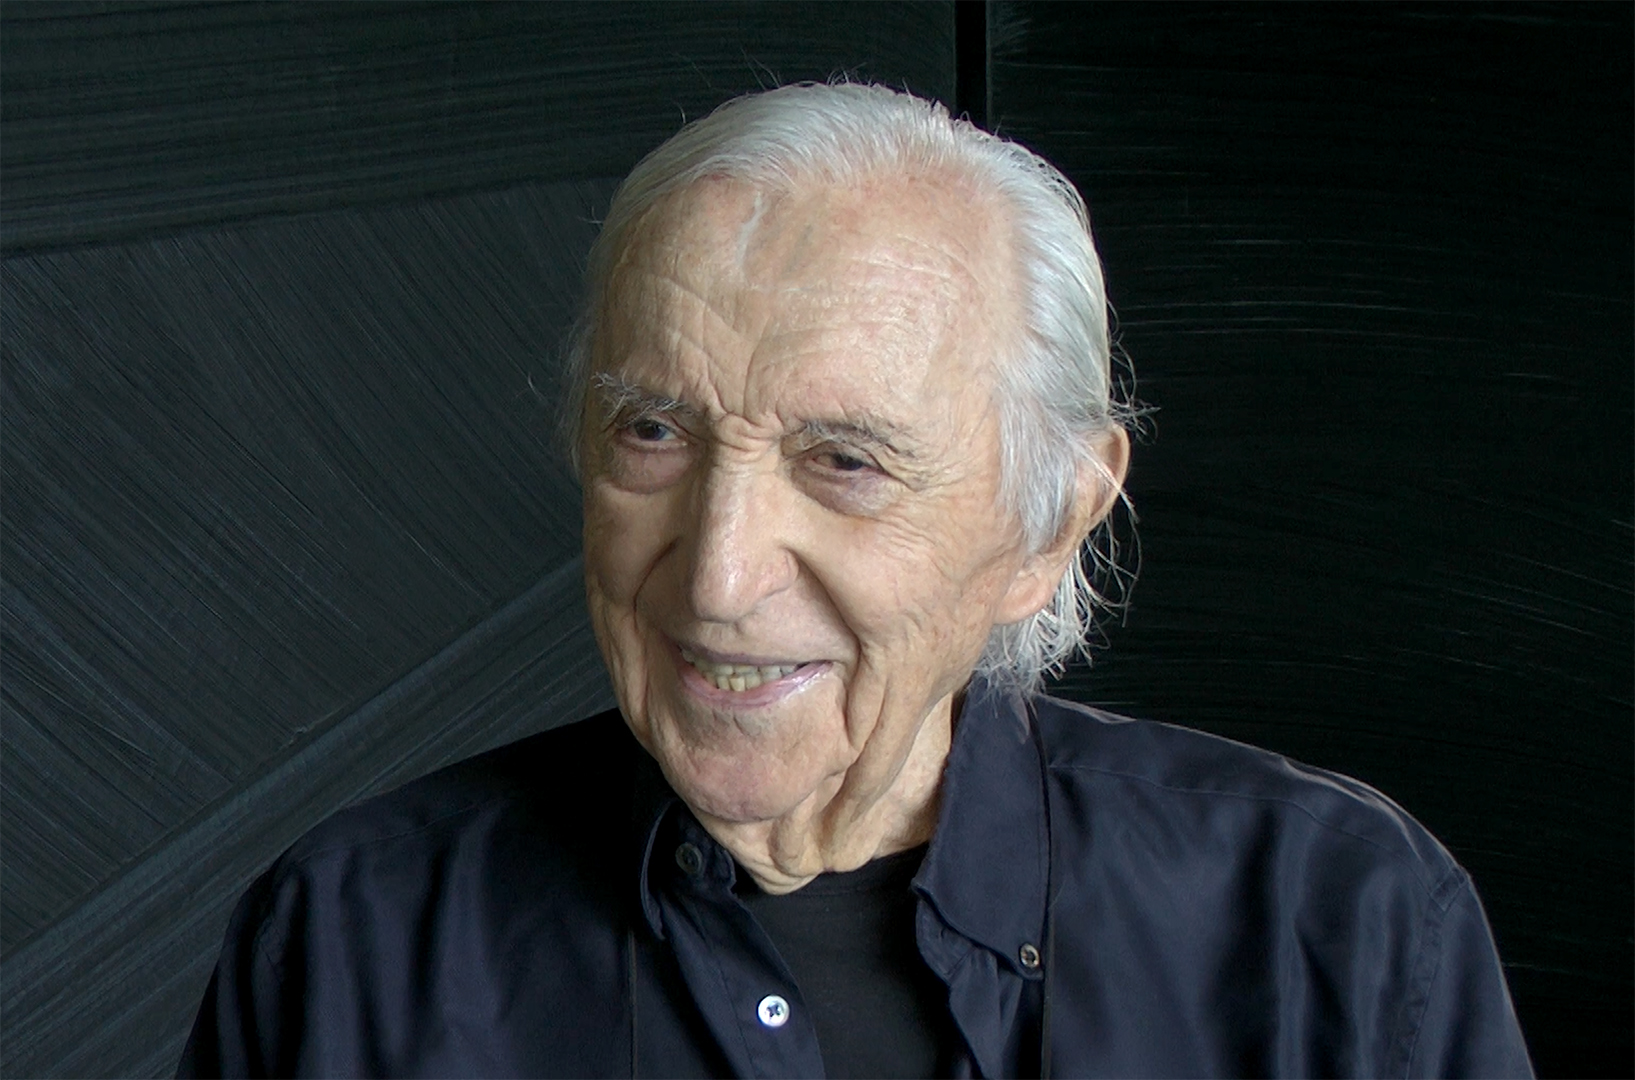 https://upload.wikimedia.org/wikipedia/commons/9/98/655446-artiste-pierre-soulages.jpg